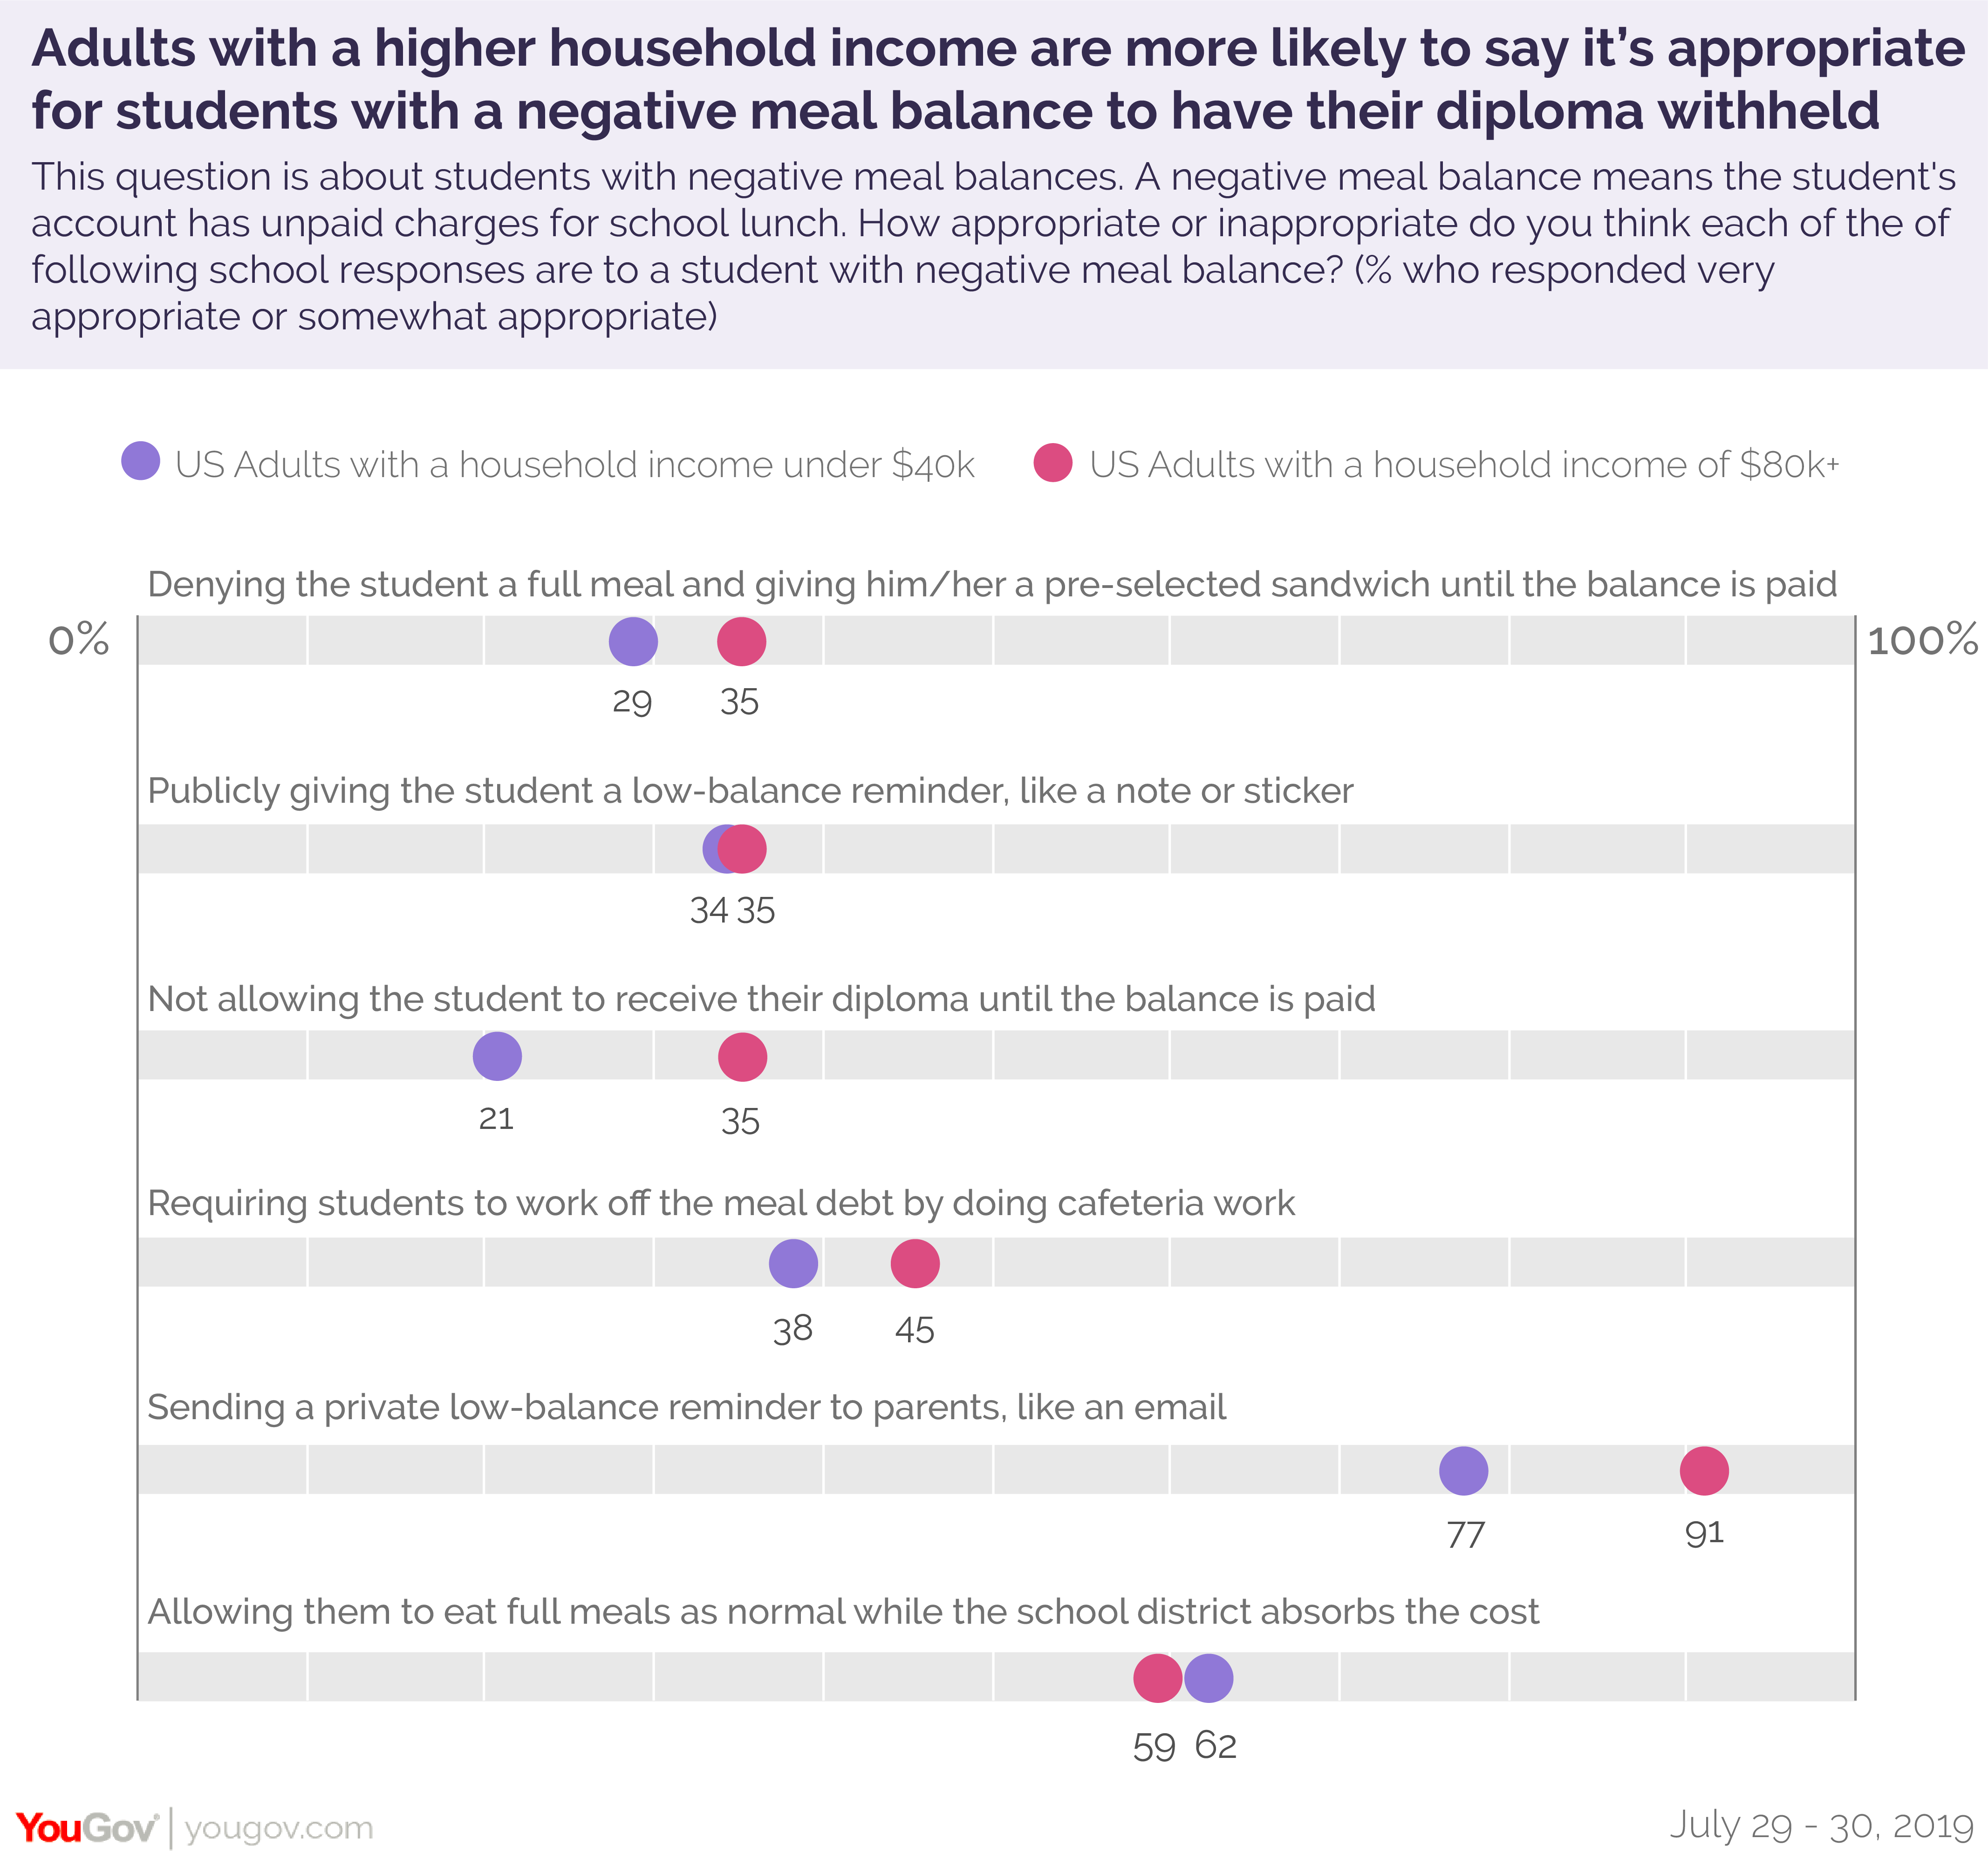 Adults with a higher household income are more likely to say it's appropriate for students with a negative meal balance to have their diploma withheld